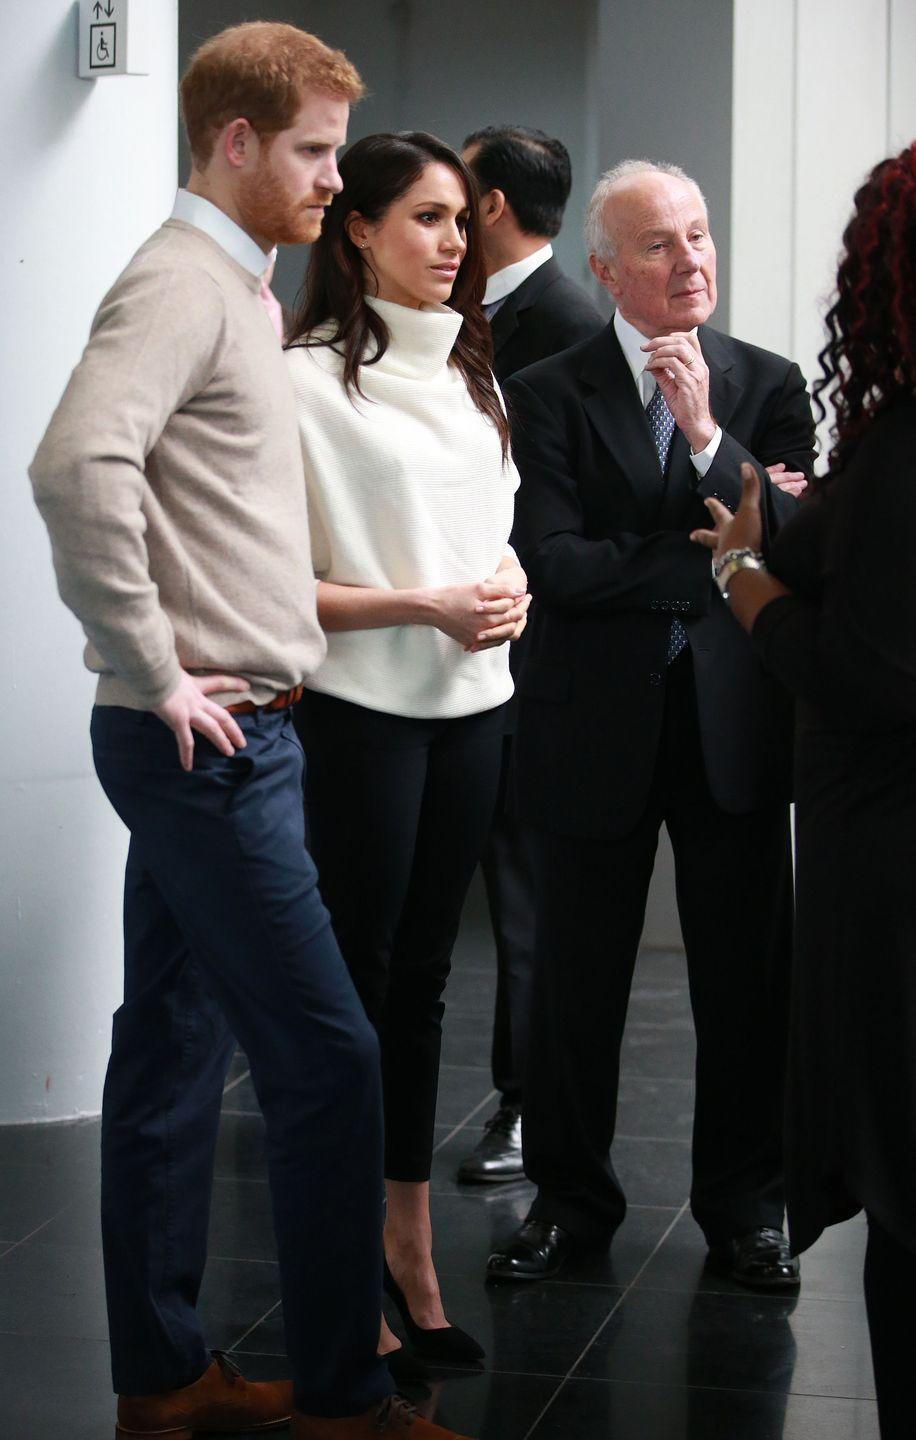 "<p>While inside Millennium Point during their royal visit to Birmingham, Markle gave us a better look at her white sweater by <a href=""https://www.allsaints.com/women/knitwear/allsaints-ridley-jumper/?colour=4068&category=26"" rel=""nofollow noopener"" target=""_blank"" data-ylk=""slk:AllSaints"" class=""link rapid-noclick-resp"">AllSaints</a> and Alexander Wang pants. </p>"